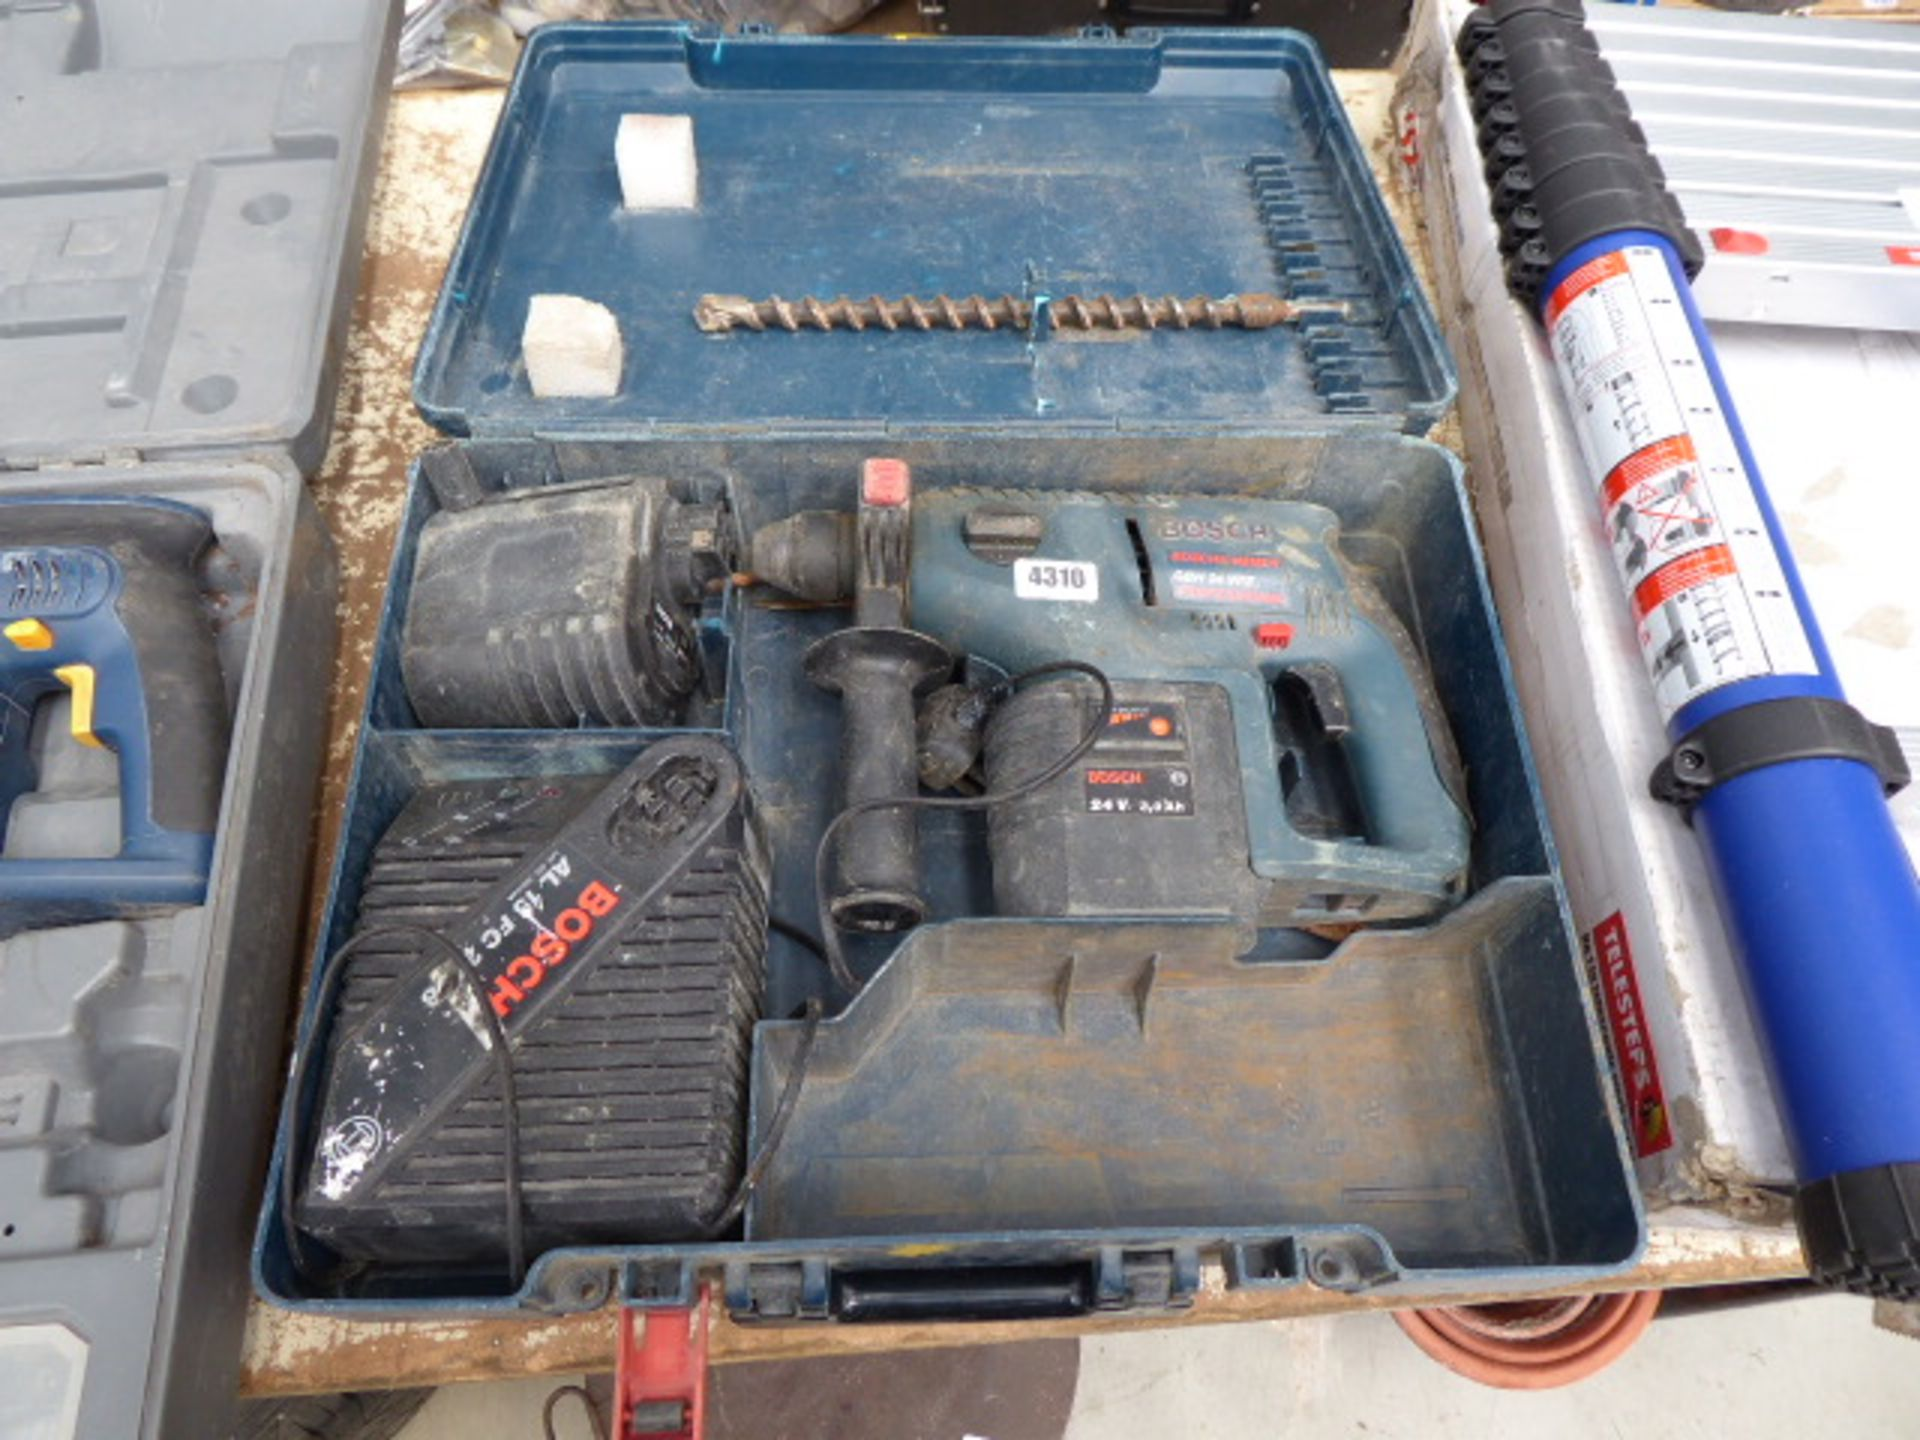 Lot 4310 - Bosch 24v battery drill with 2 batteries and charger